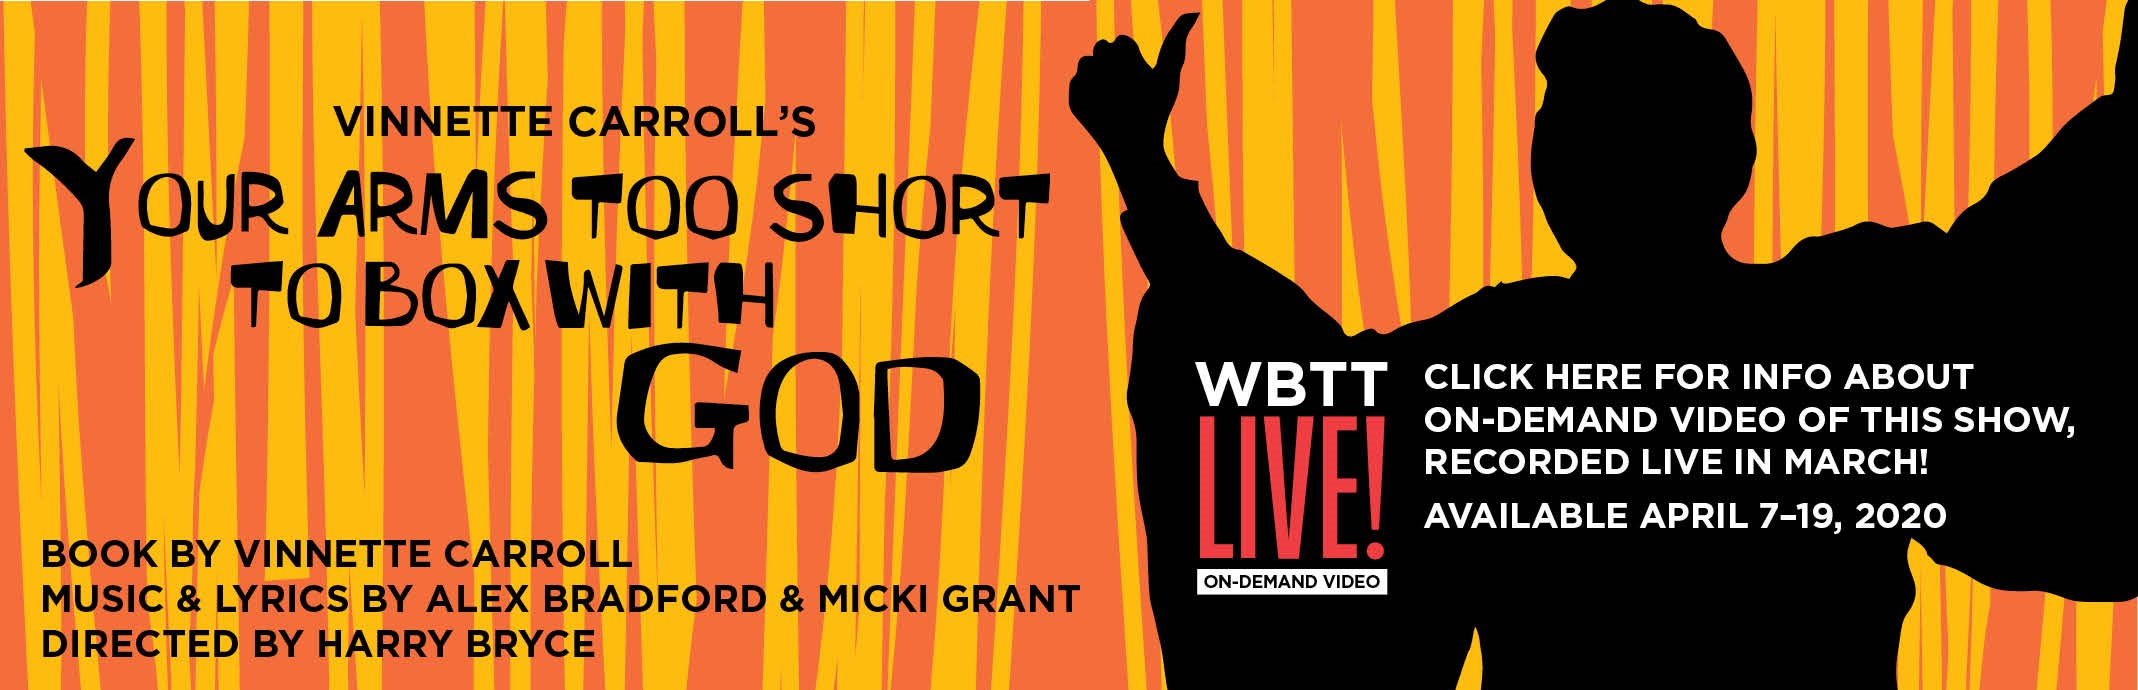 WBTT Live! On Demand - Now Available